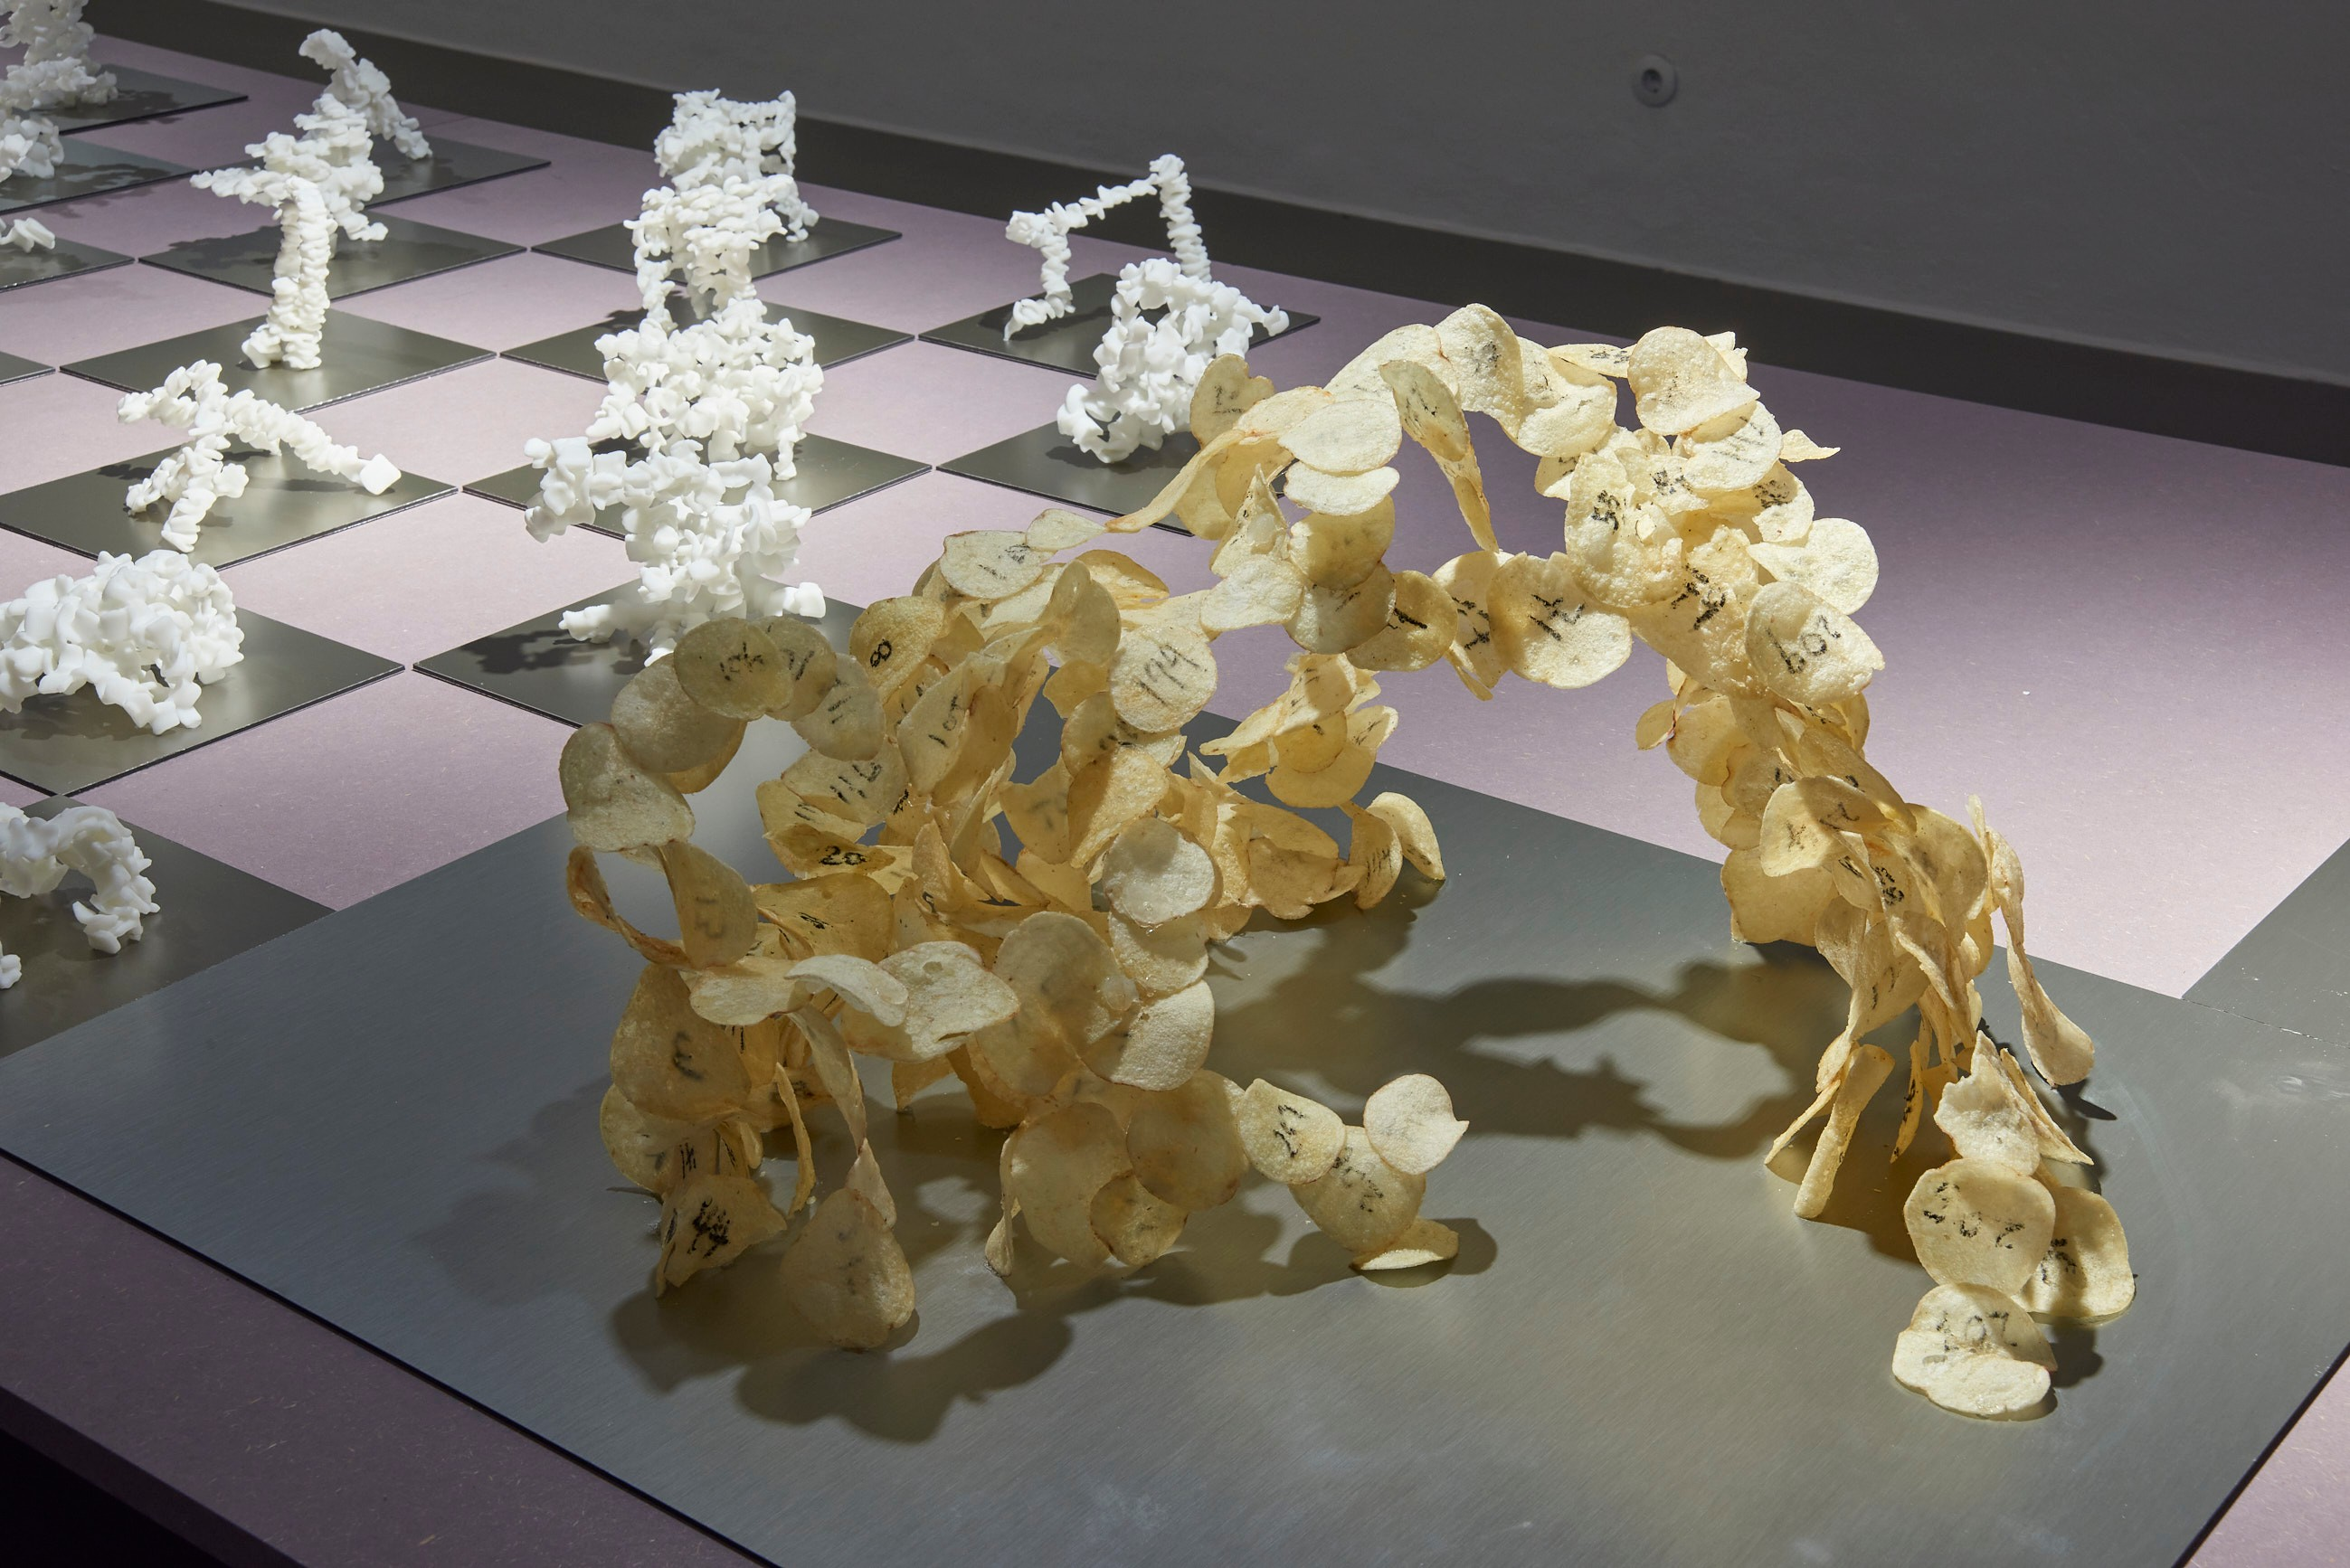 <BODY><div>MAK Exhibition View, 2020</div><div>CREATIVE CLIMATE CARE </div><div>Chien-hua Huang. Reform Standard</div><div>in the front: Potato chips model (Process model)</div><div>MAK GALLERY</div><div>© MAK/Georg Mayer</div></BODY>